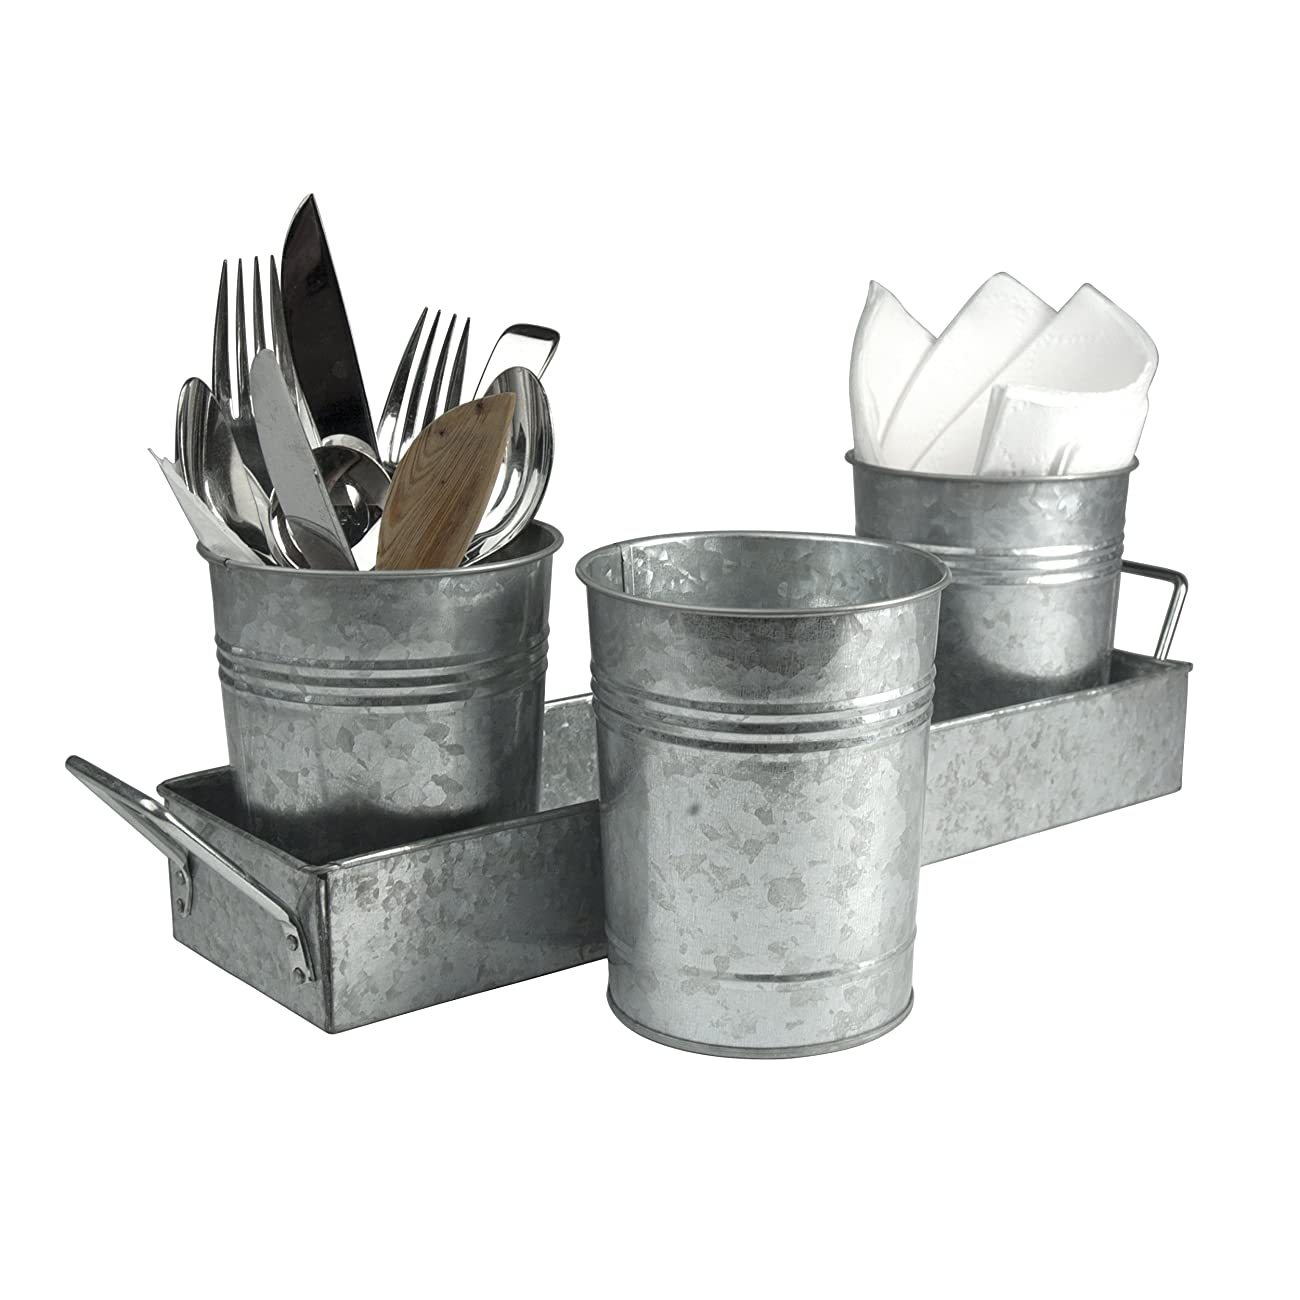 Oasis Picnic Caddy & Planter Set, Galvanized 1